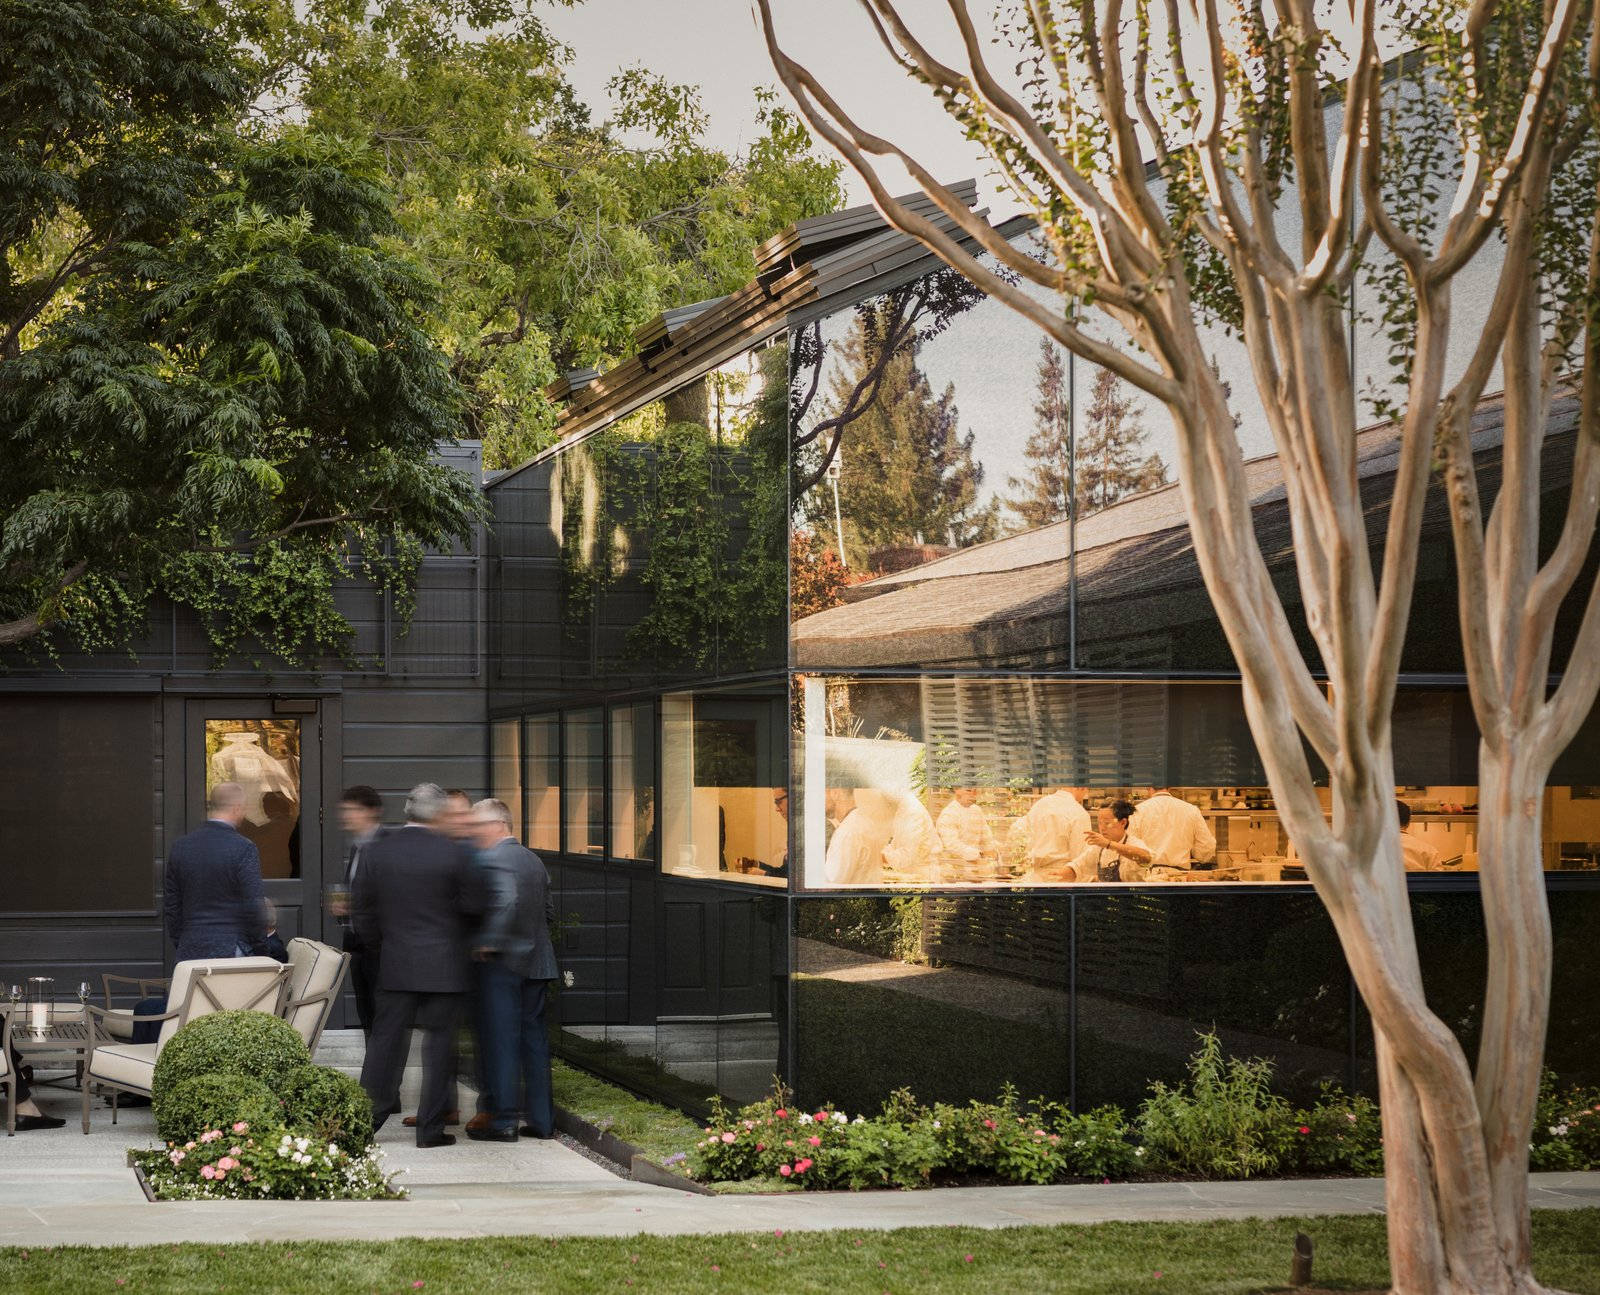 Exterior, Wood Siding Material, Gable RoofLine, and Glass Siding Material The pitched, low-slung roofs of the kitchen and annex allude to their utilitarian function.  Photo 5 of 12 in A Look Inside The French Laundry's Stunning $10M Renovation